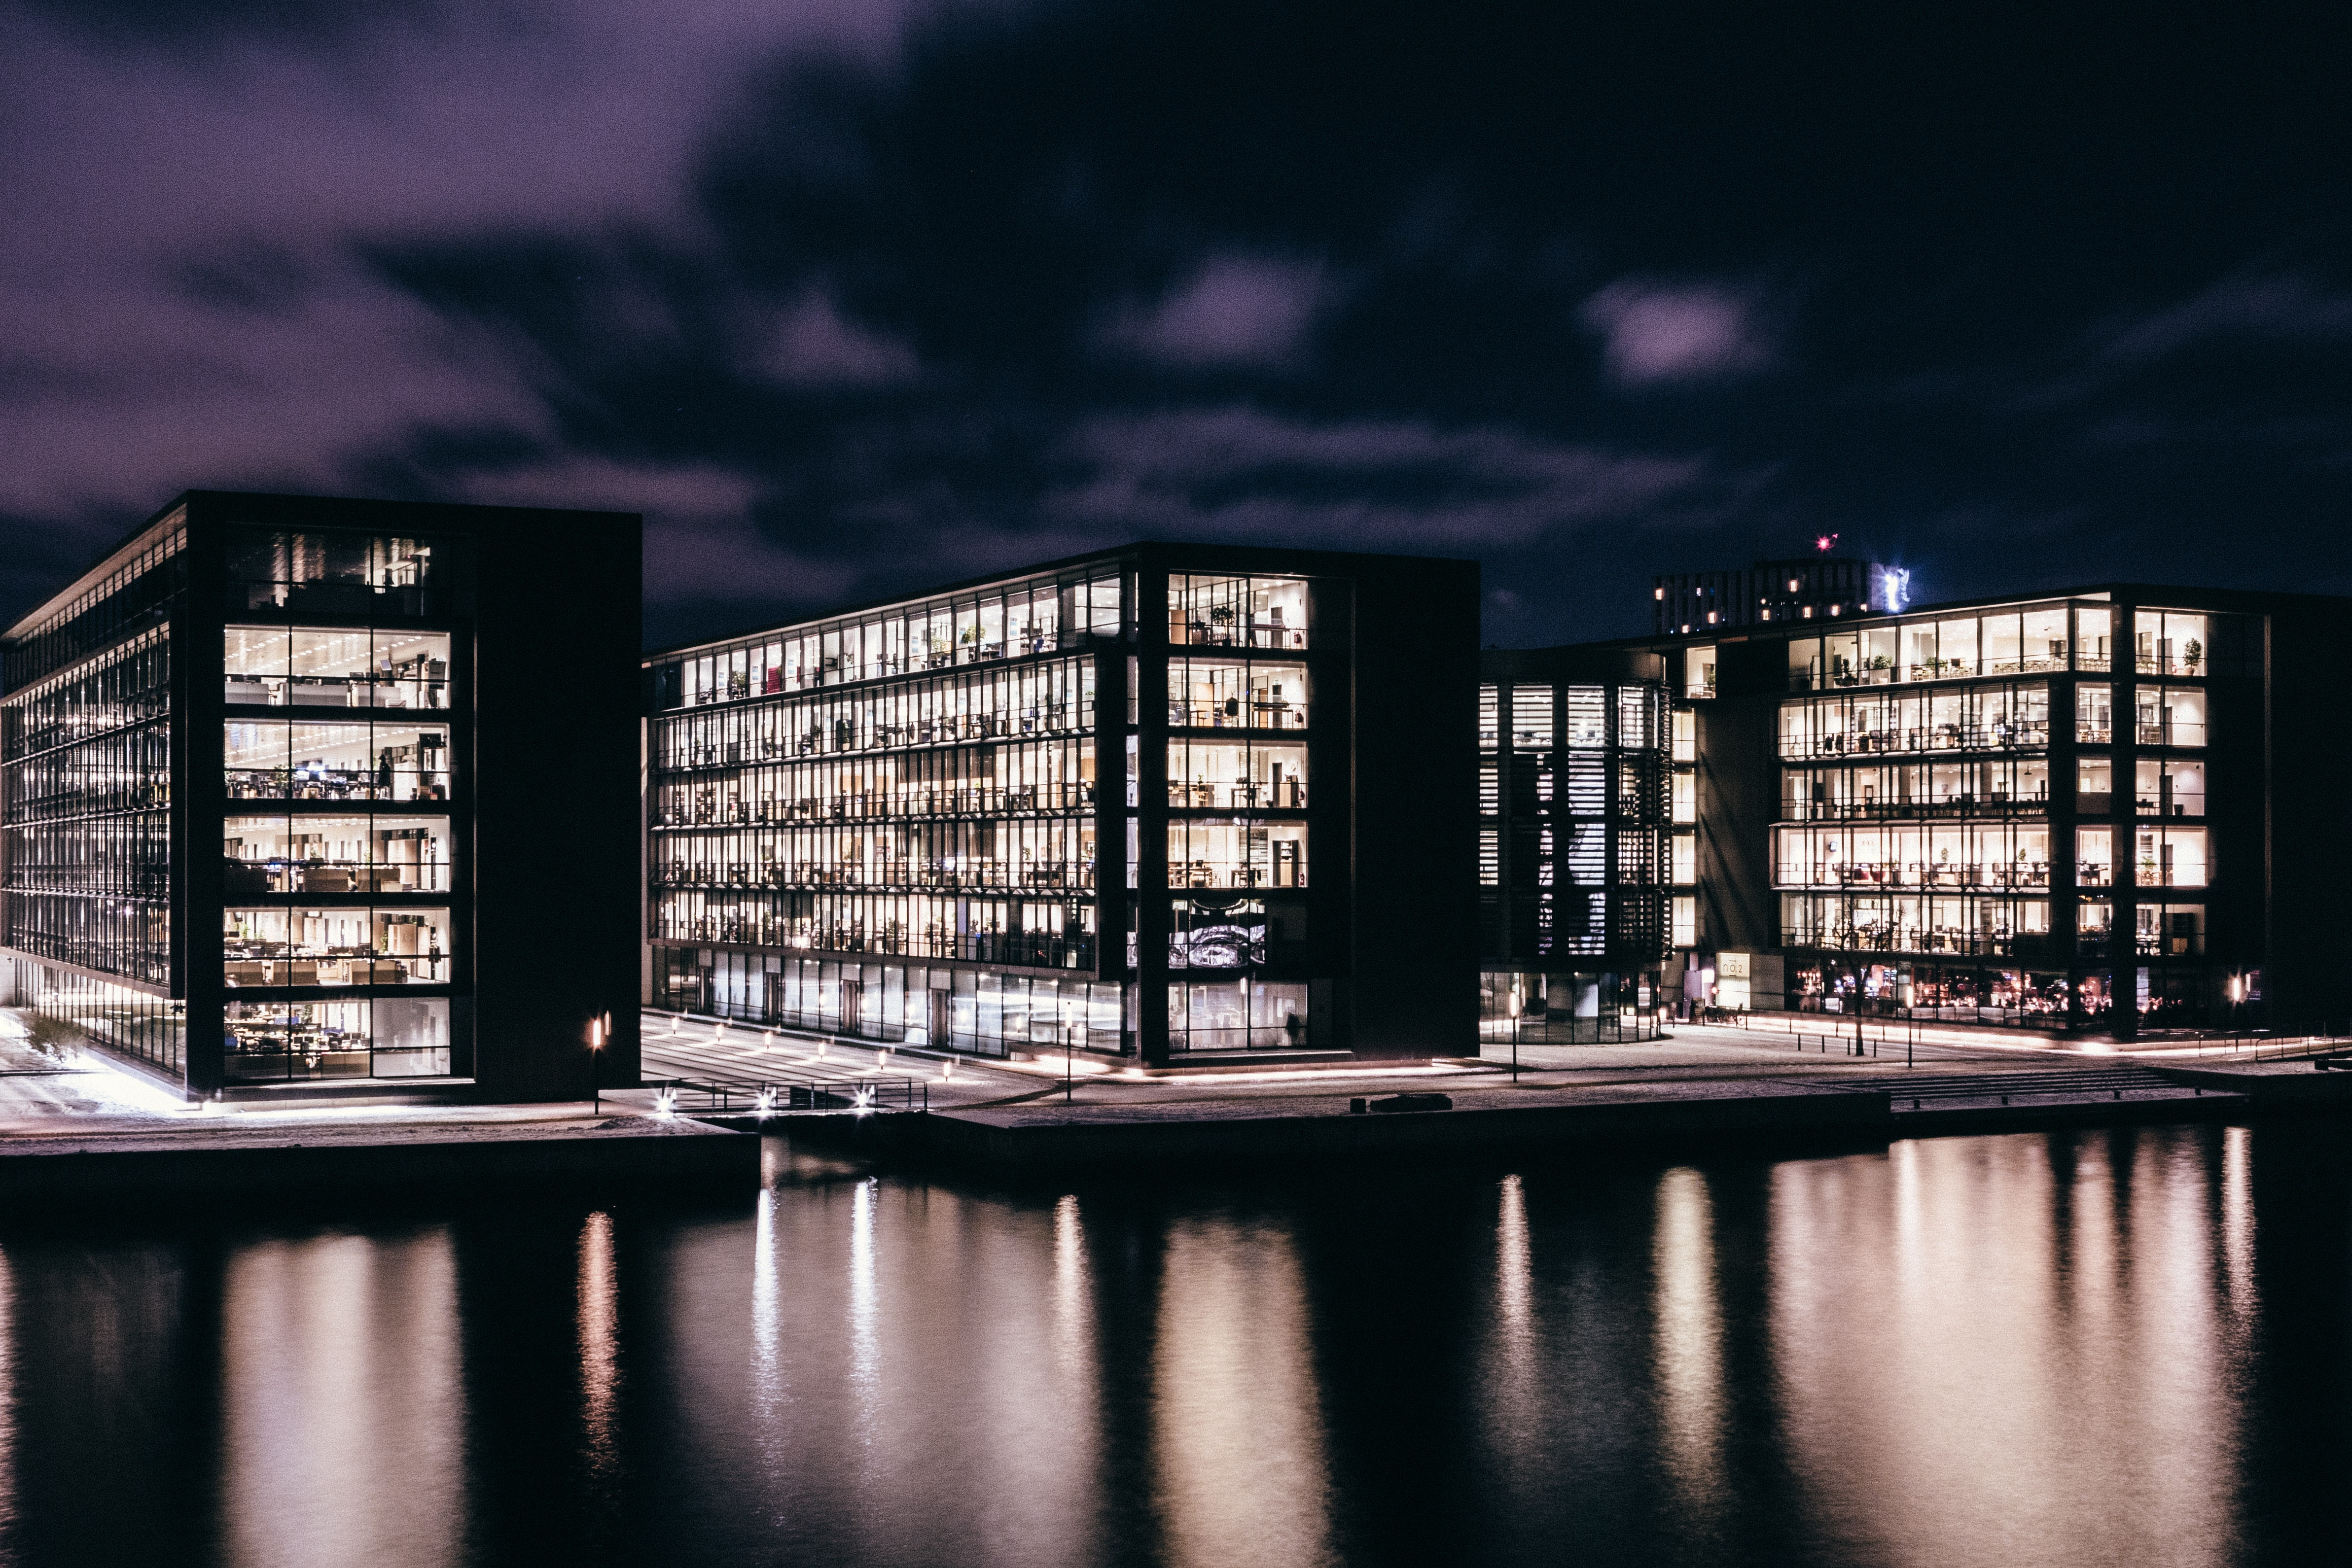 three concrete buildings near body of water during nighttime